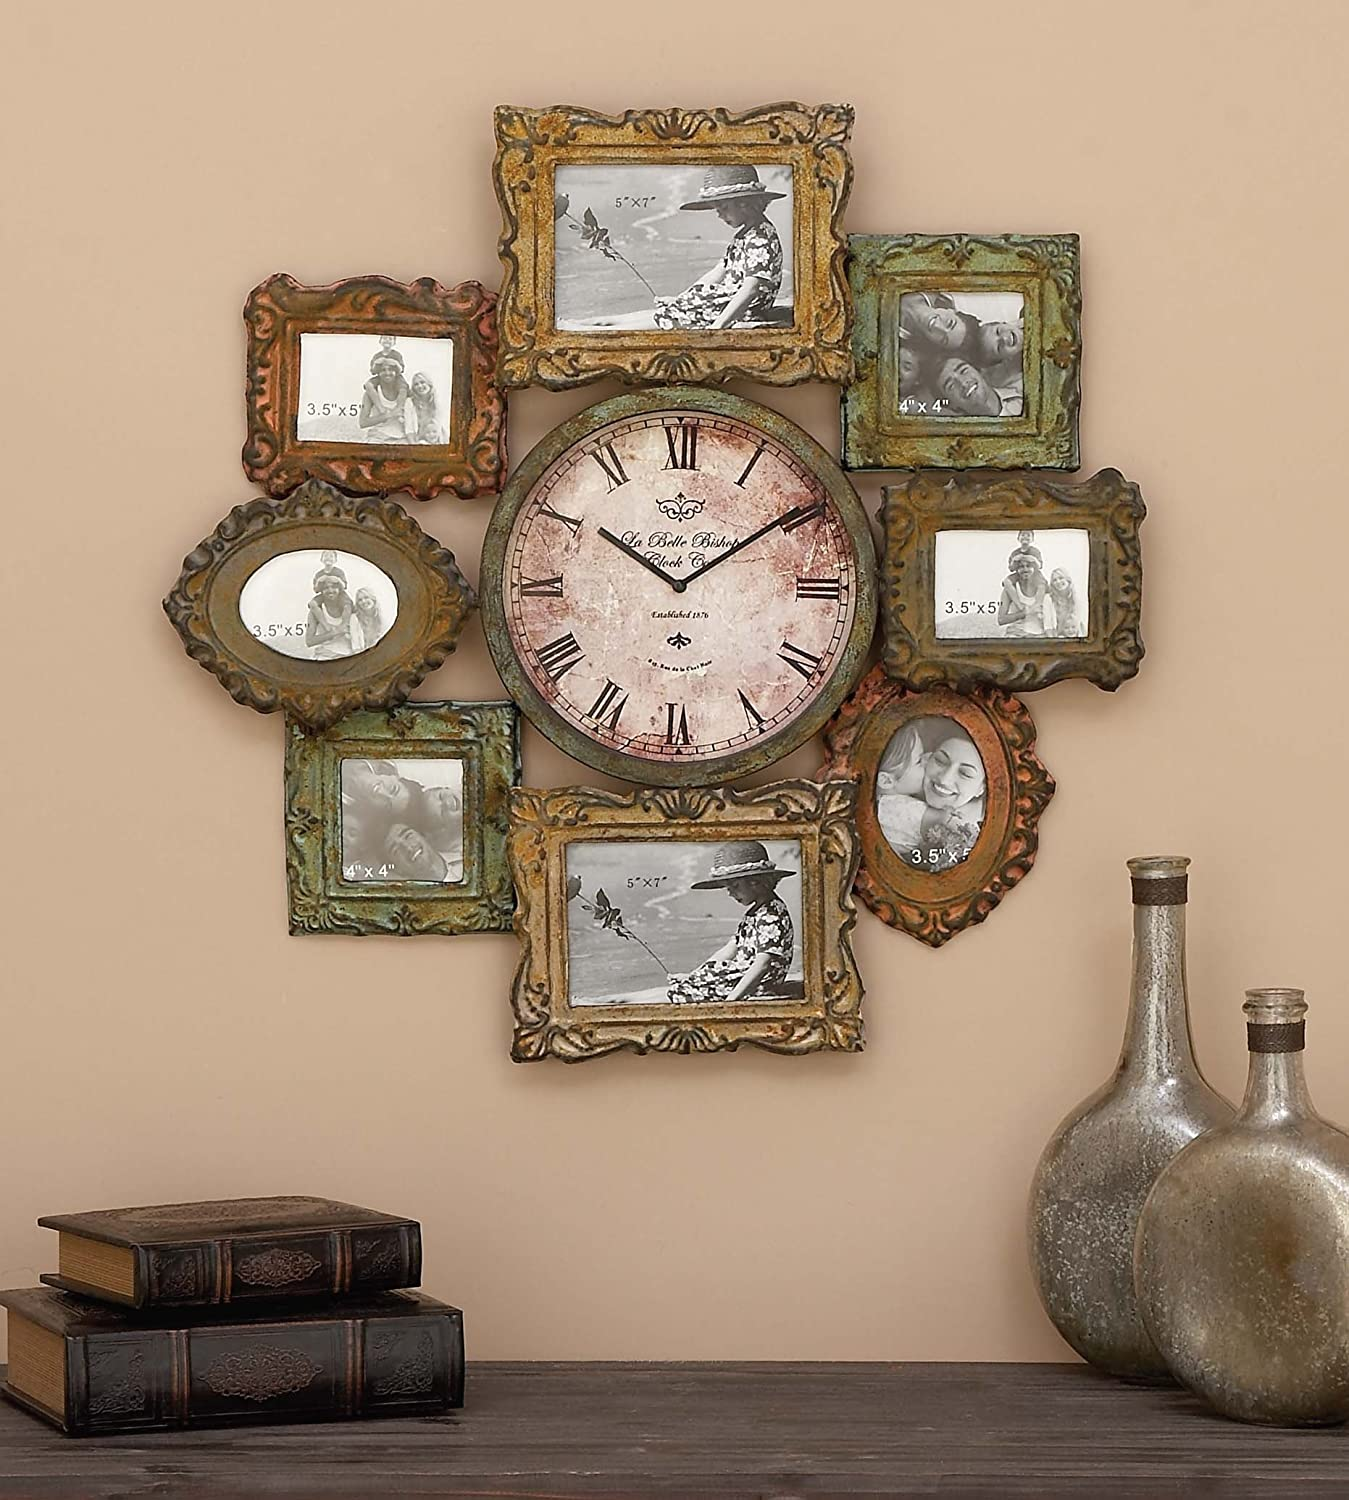 Amazon deco 79 metal clock photo frame 25 by 25 inch home amazon deco 79 metal clock photo frame 25 by 25 inch home kitchen amipublicfo Gallery